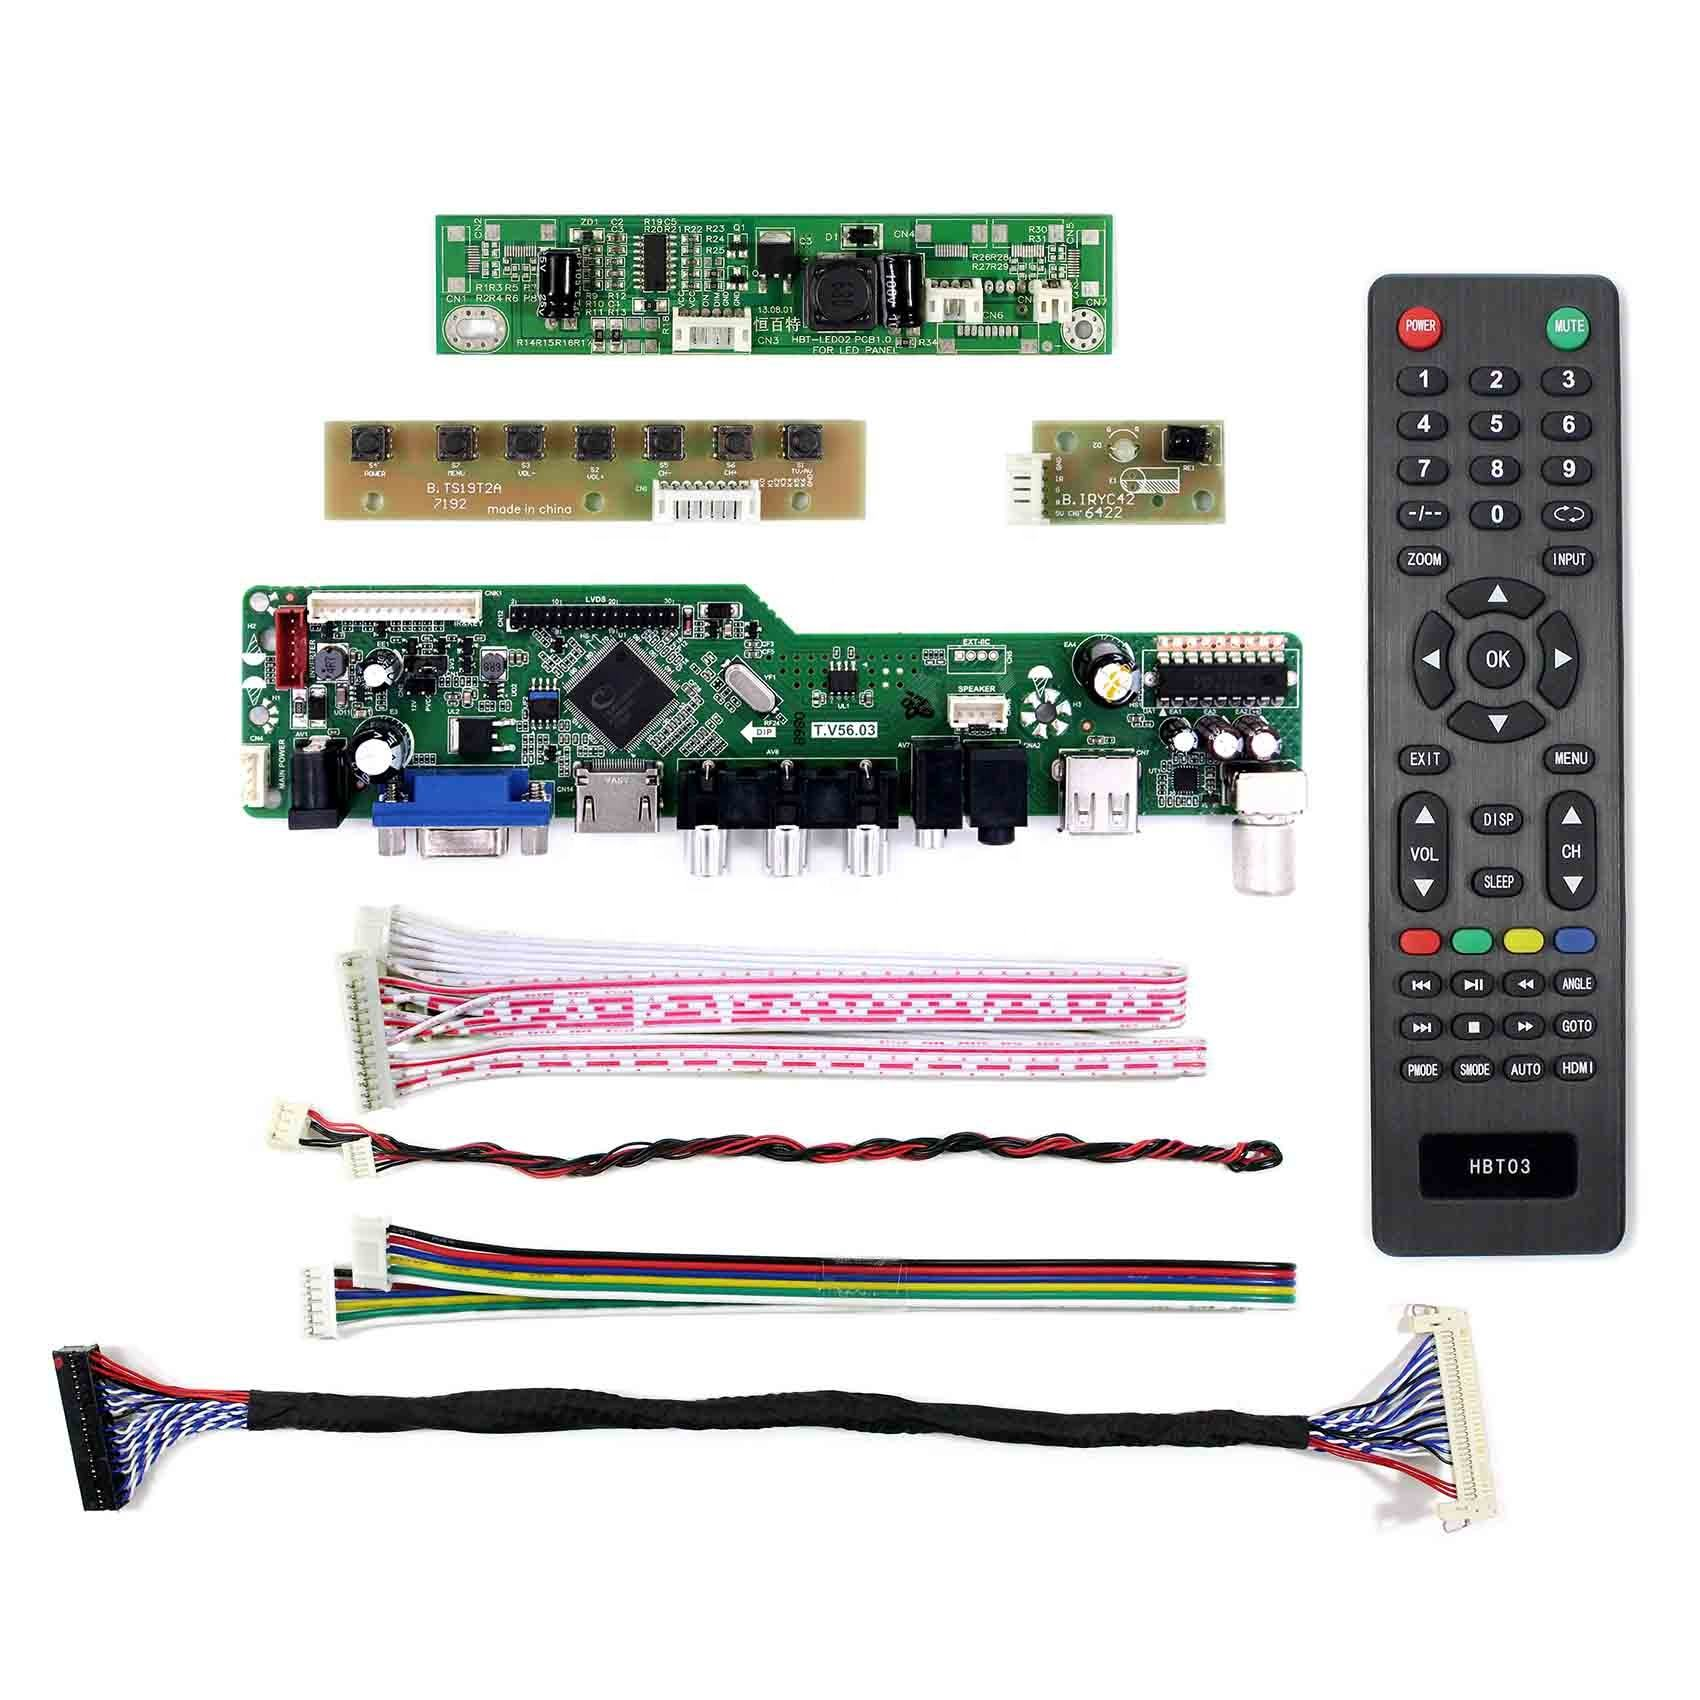 HDMI VGA AV USB RF LCD Controller Board T.V56.03 work for ccfl backlight 30pin lvds LCD 17inch 1440x900 B170PW01 V1